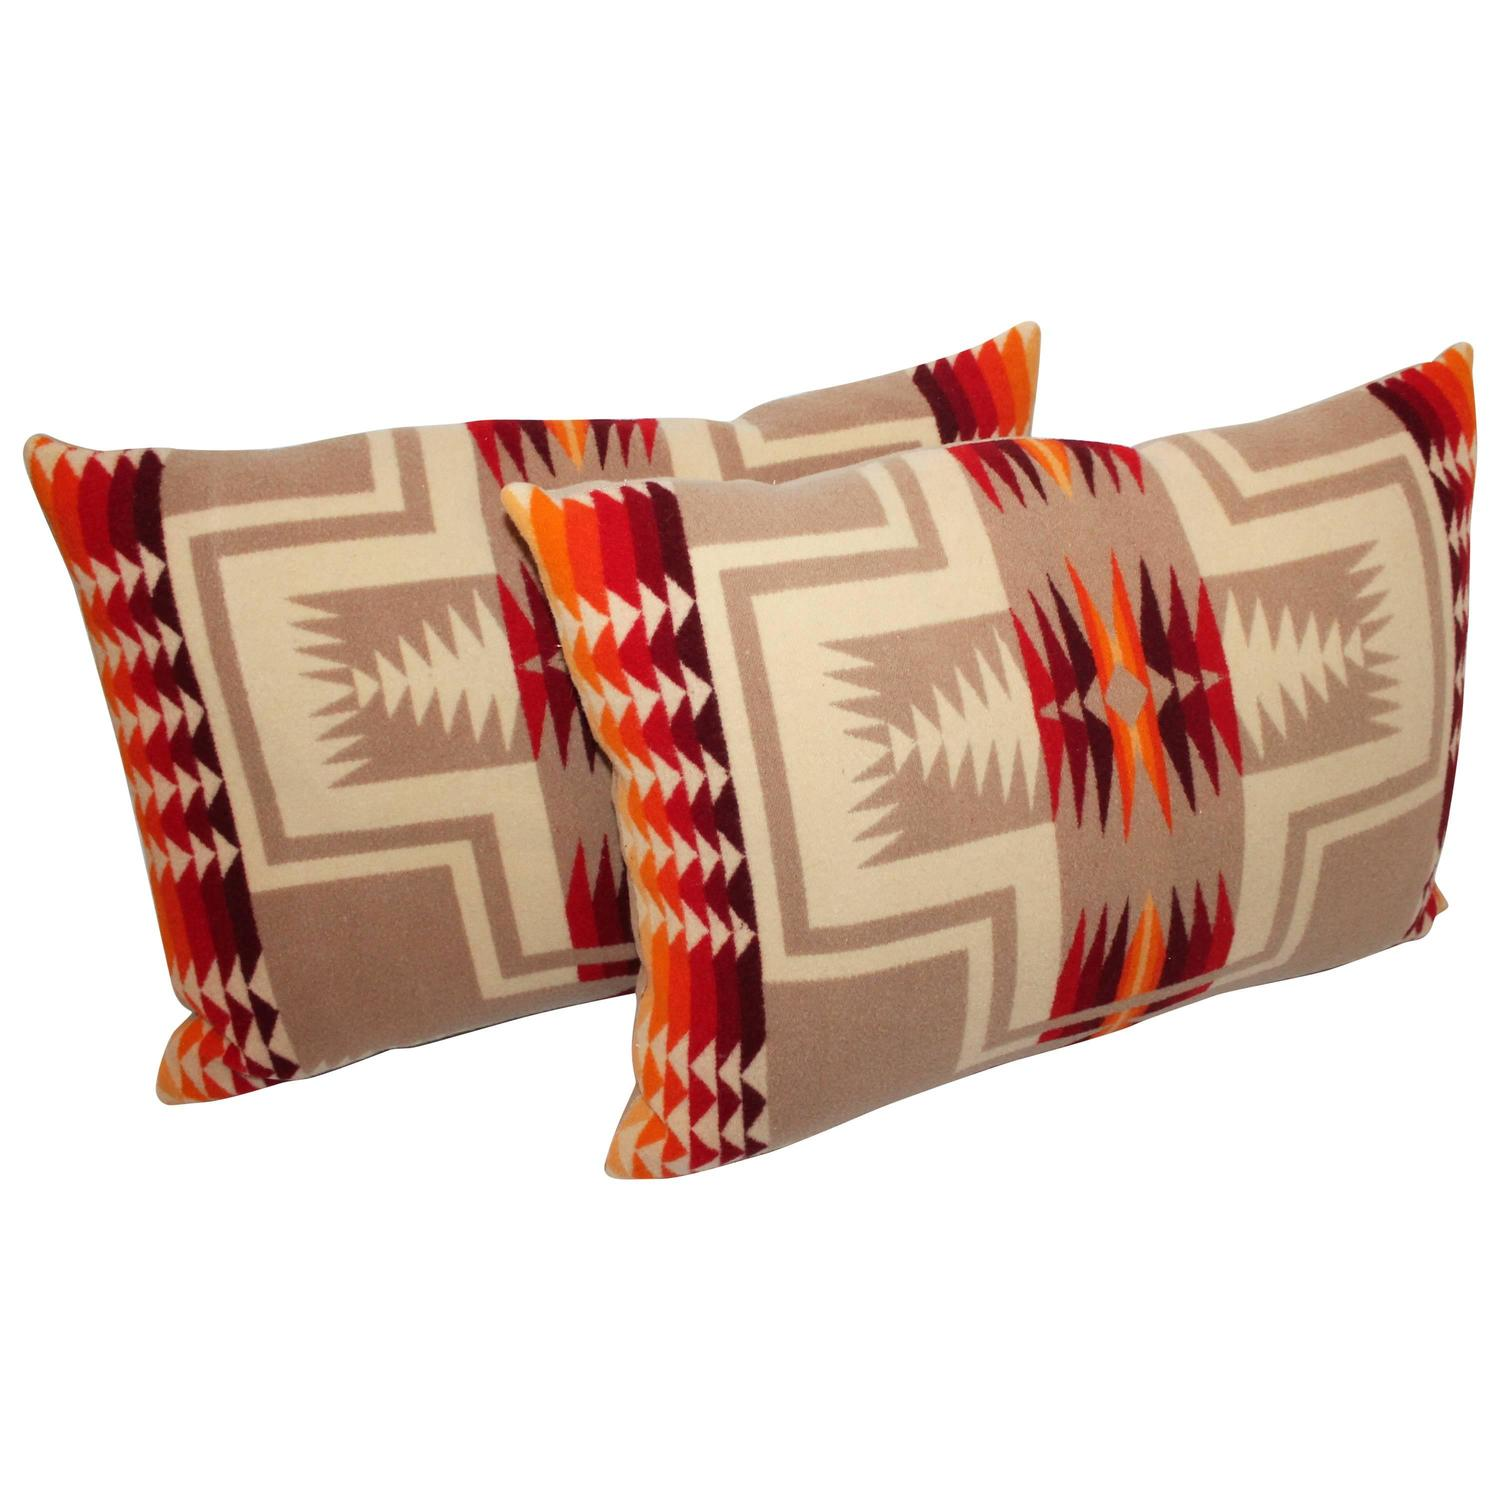 Pair of pendleton indian design camp blanket pillows at for Native american furniture designs